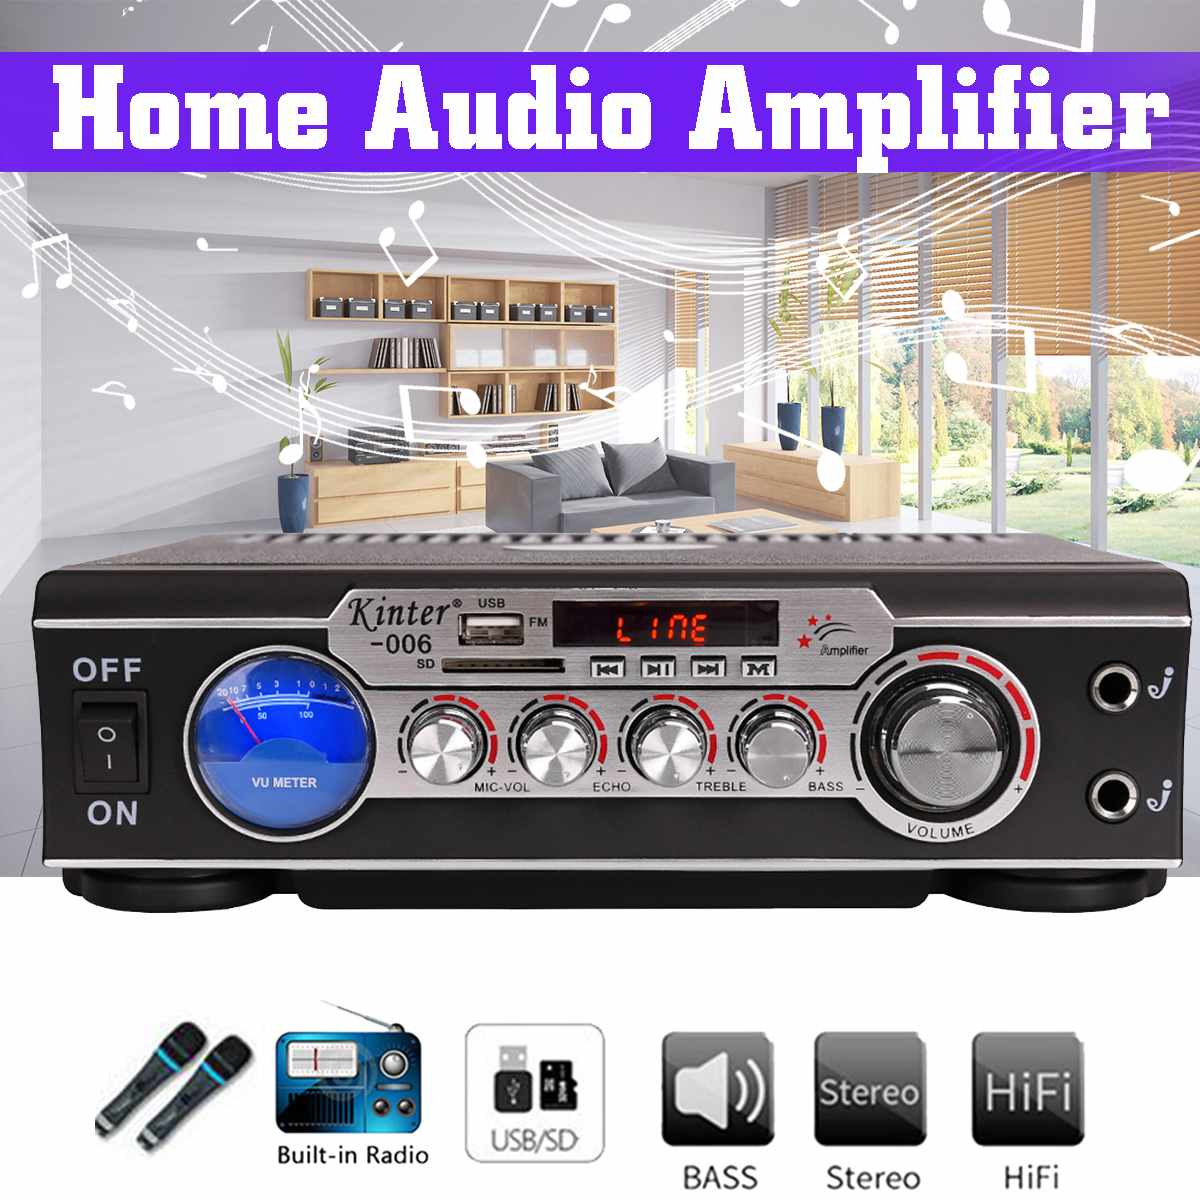 Kinter 200W Mini 2CH Digital Power Audio Amplifier 220V/12V USB SD FM Radio Music Stereo System Theater Amplifiers For Car Home